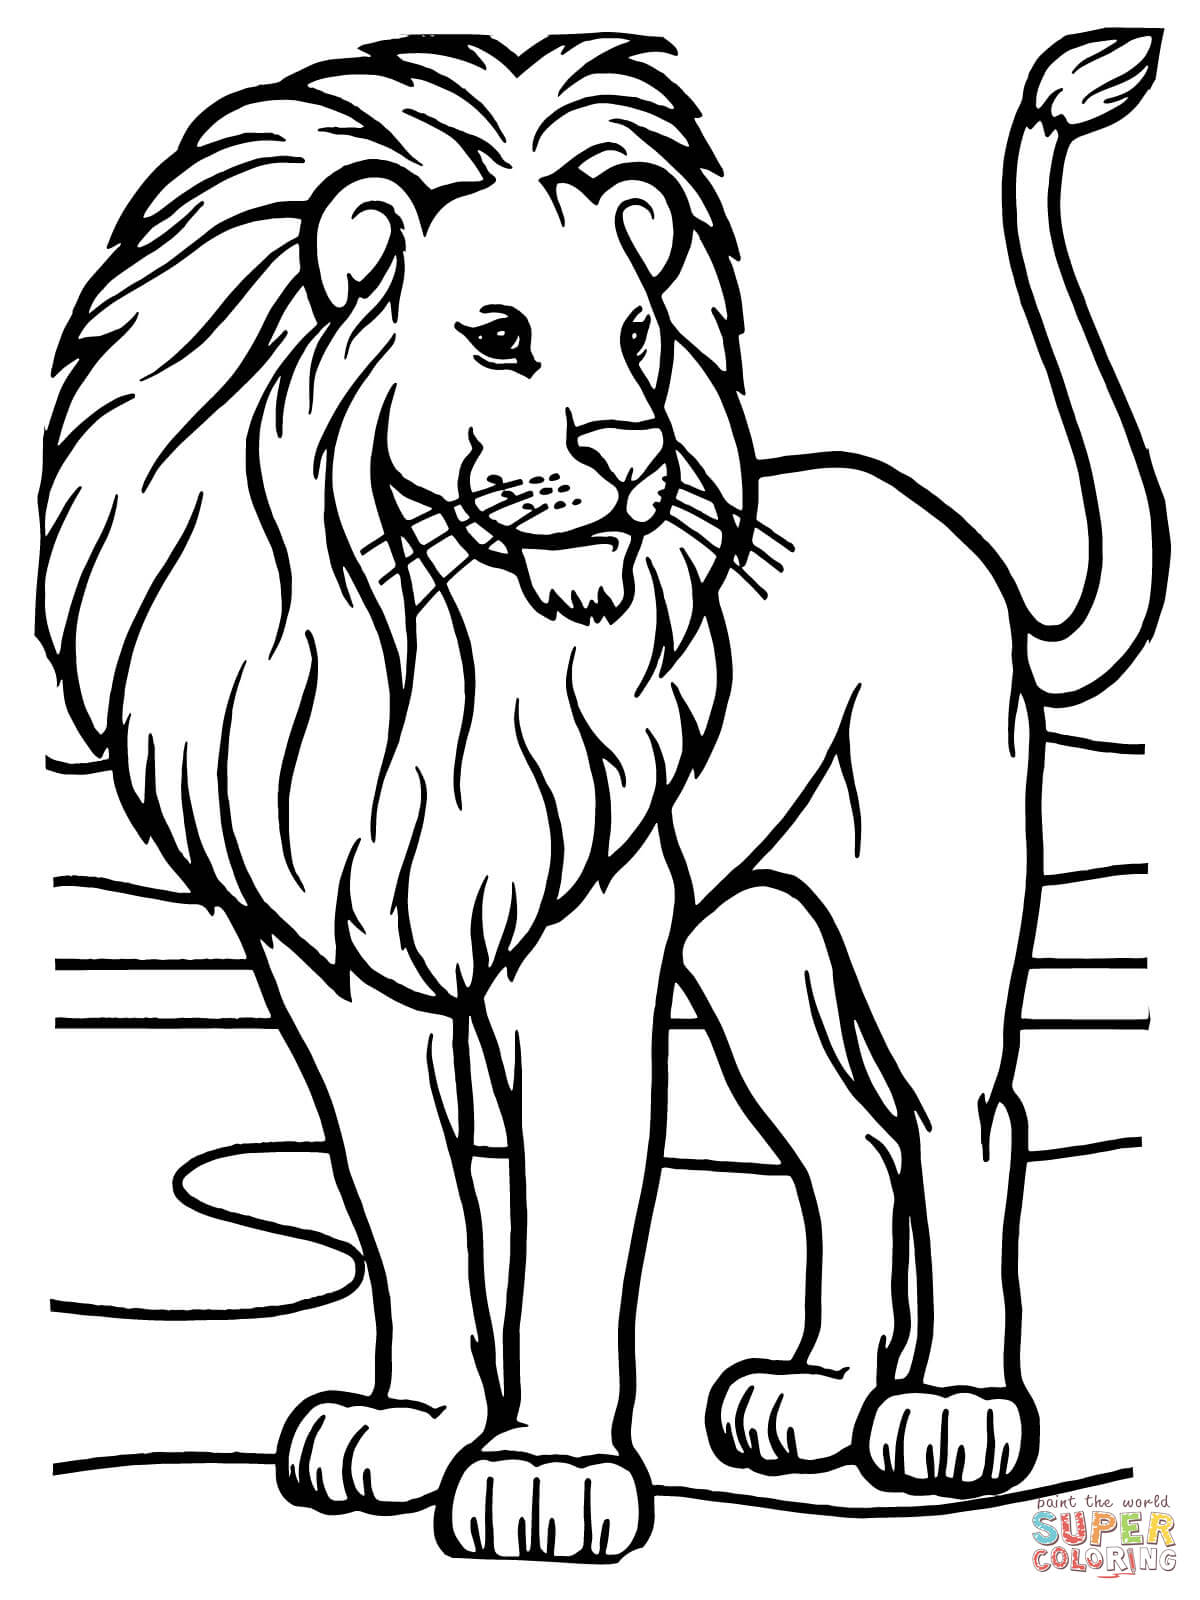 colouring images of lion lion free to color for children lion kids coloring pages of colouring lion images